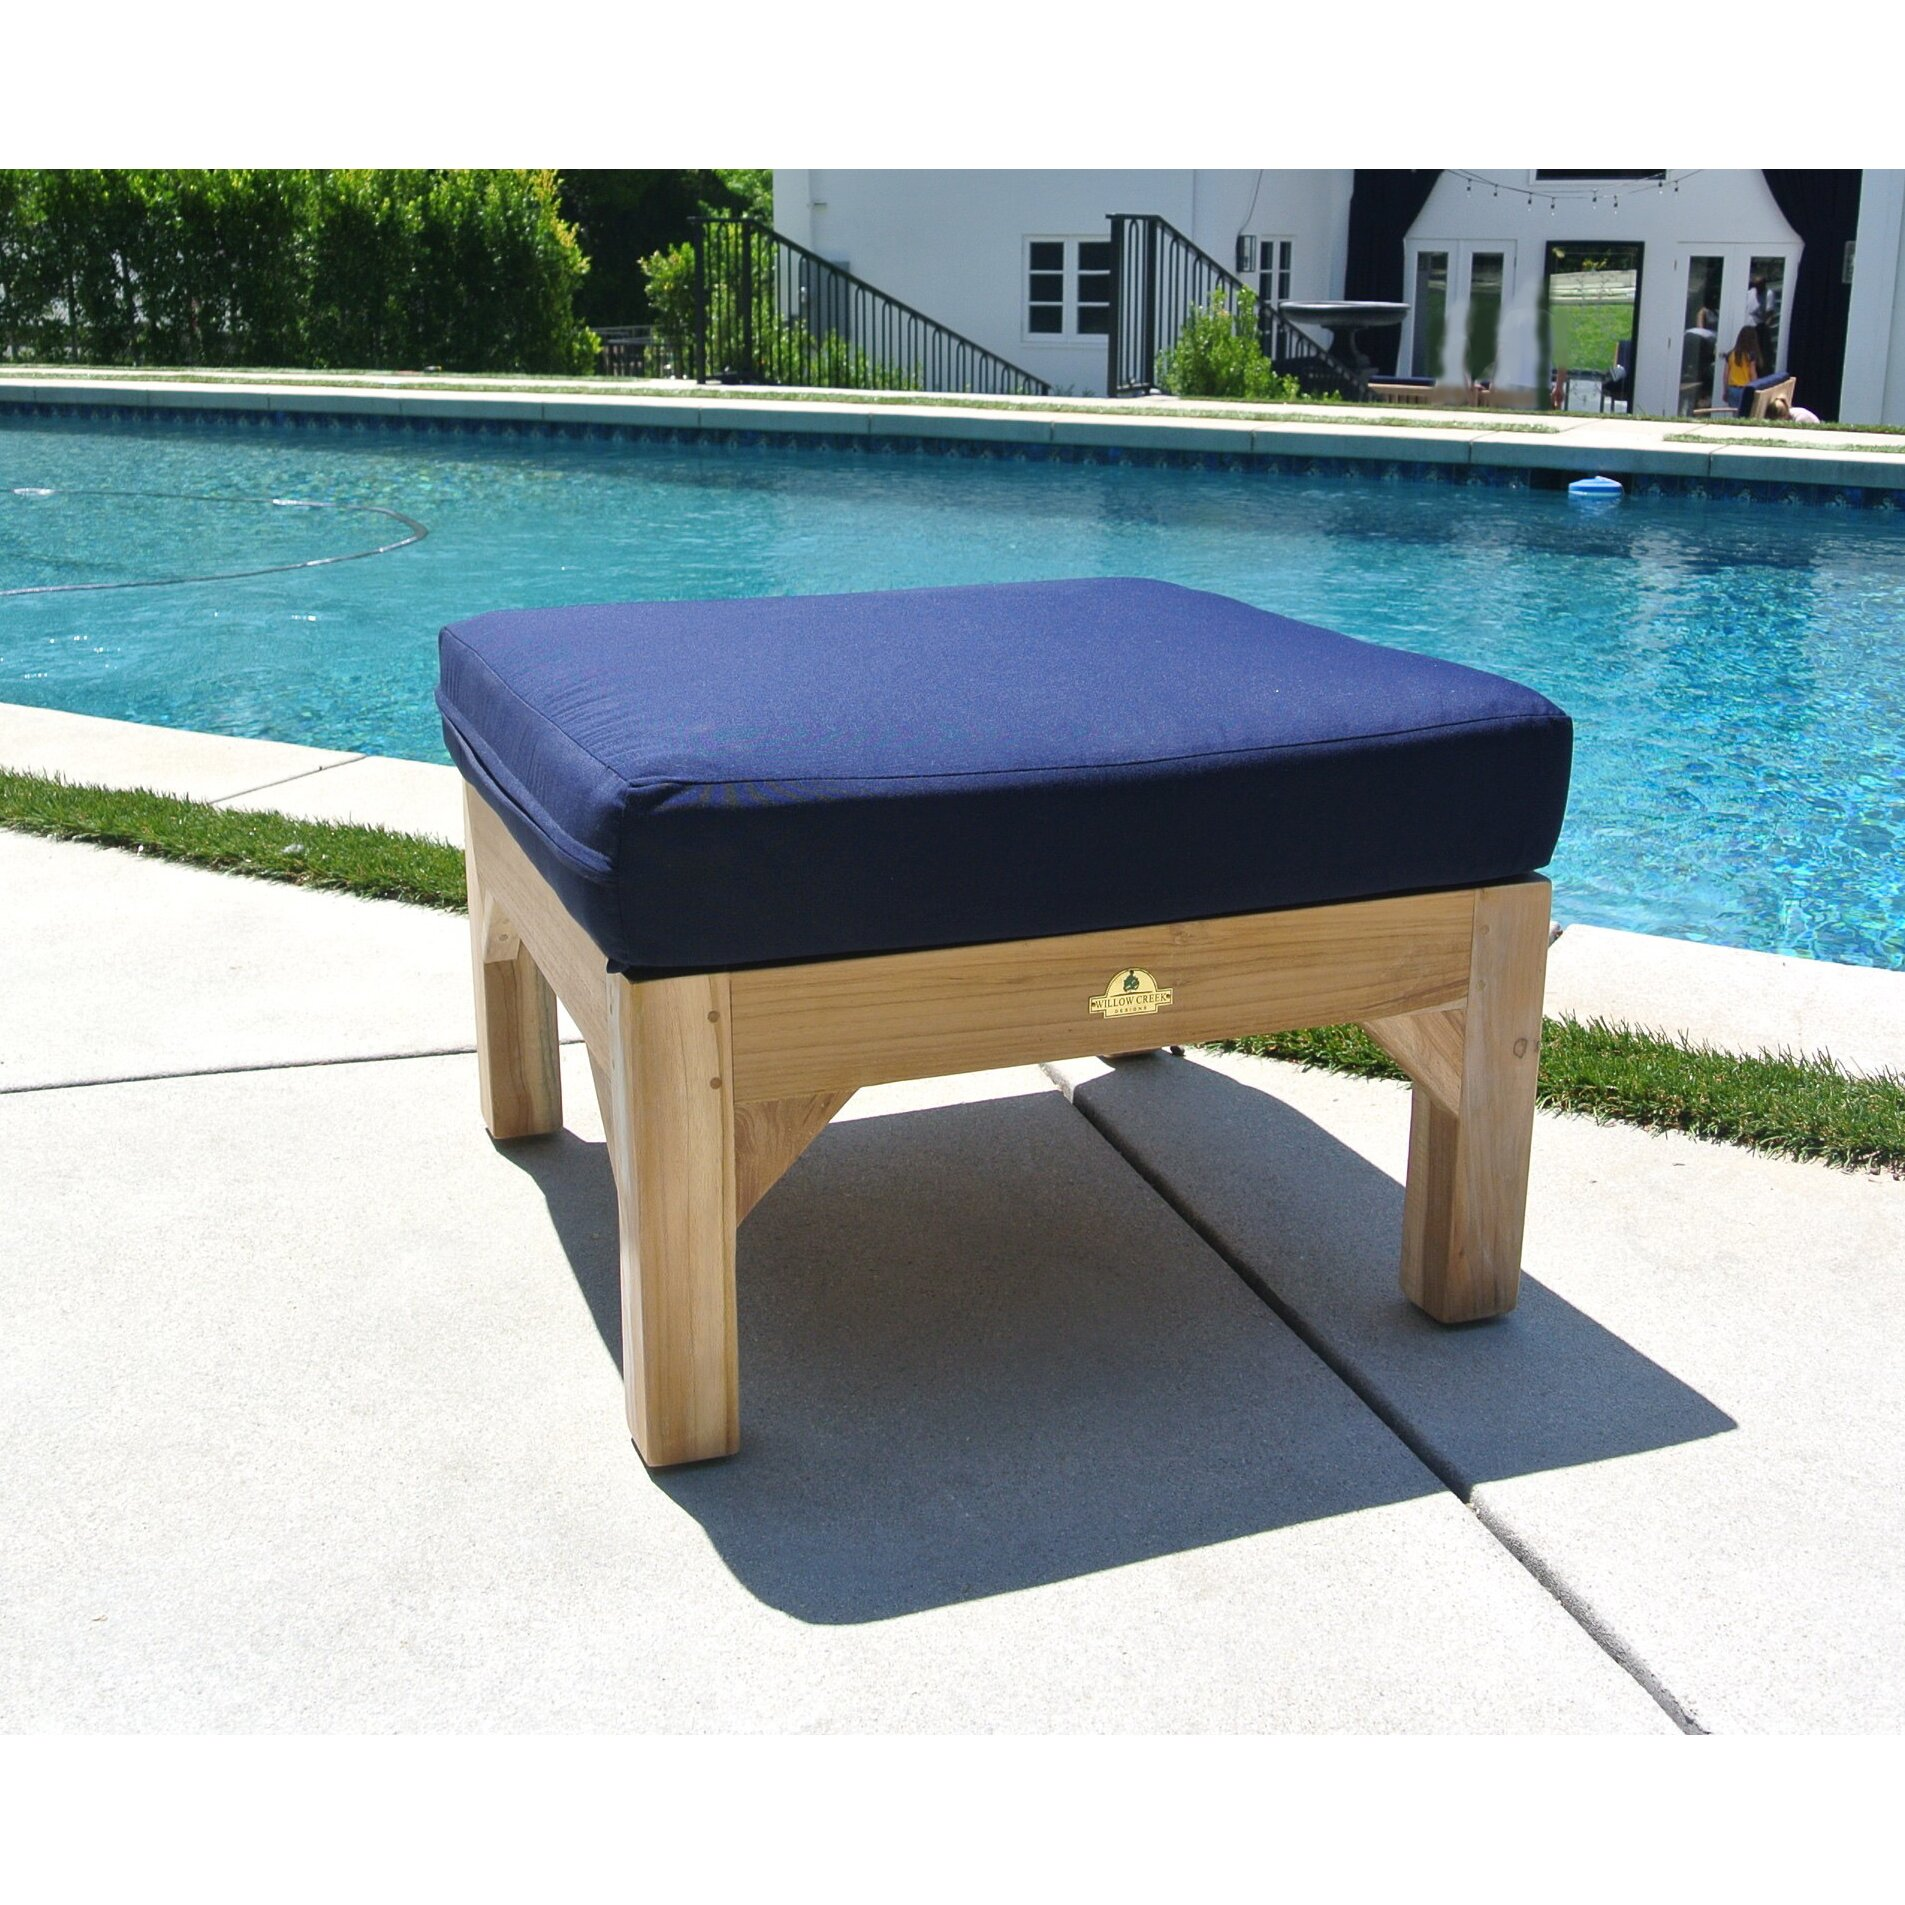 Willow creek designs outdoor sunbrella ottoman cushion for Willow creek designs